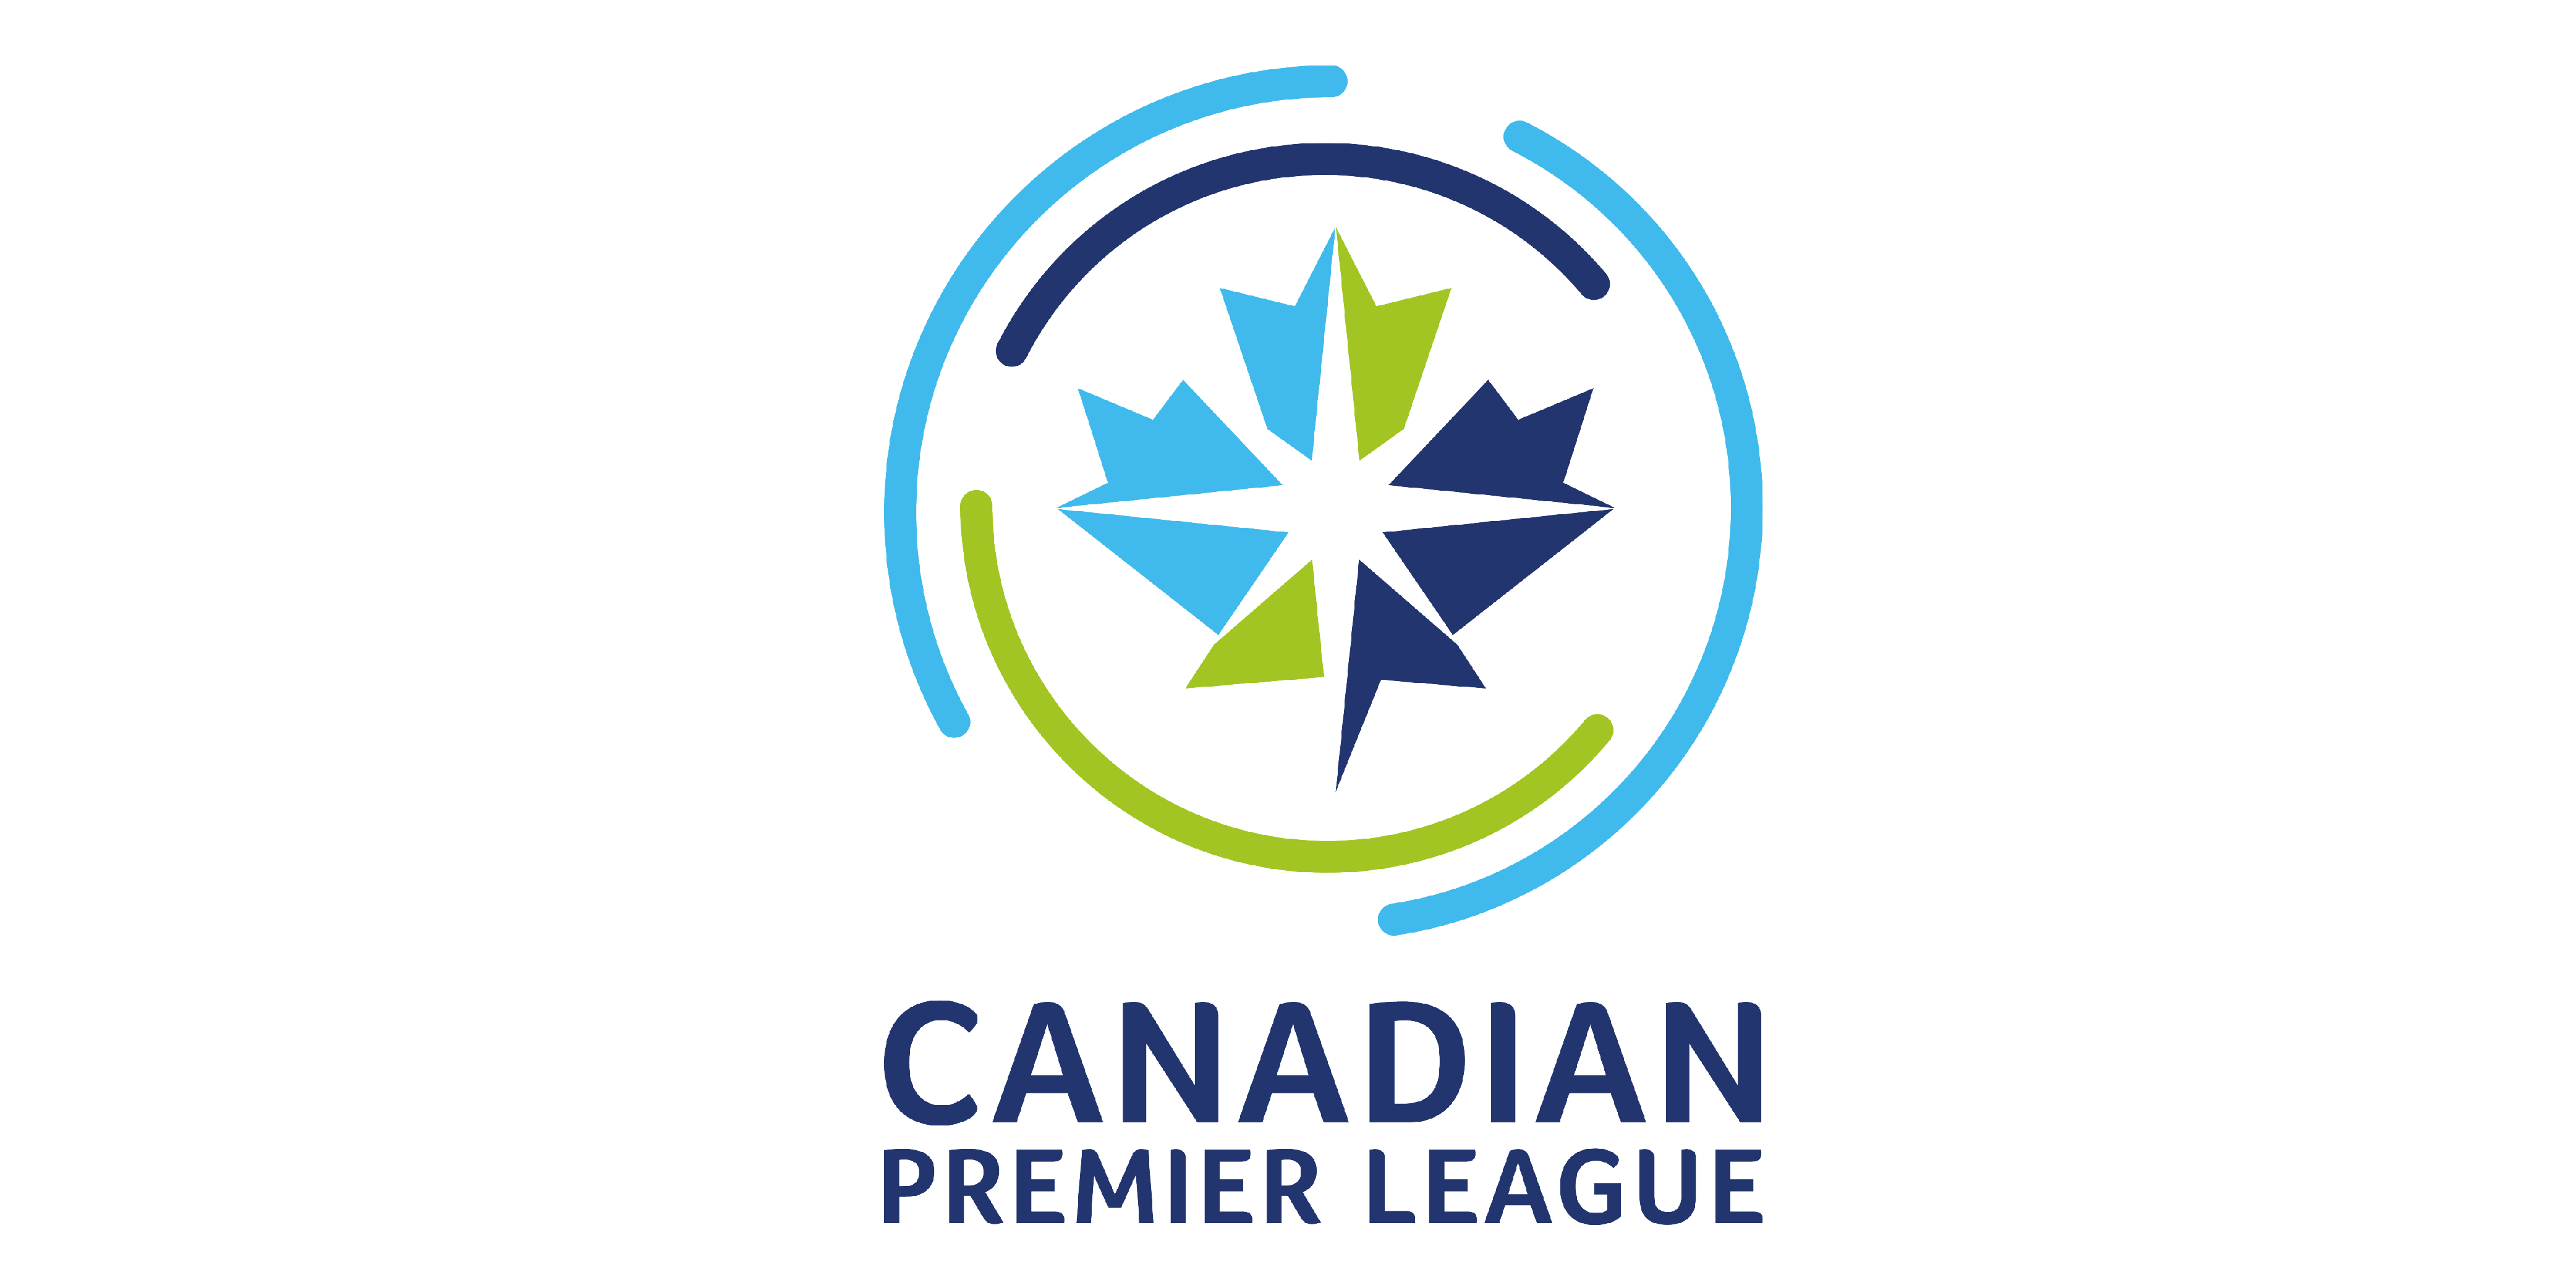 Canadian Premier League Debuts League Identity And Inaugural Branding In Advance Of The League S Kickoff In Spring 2019 Canadian Premier League